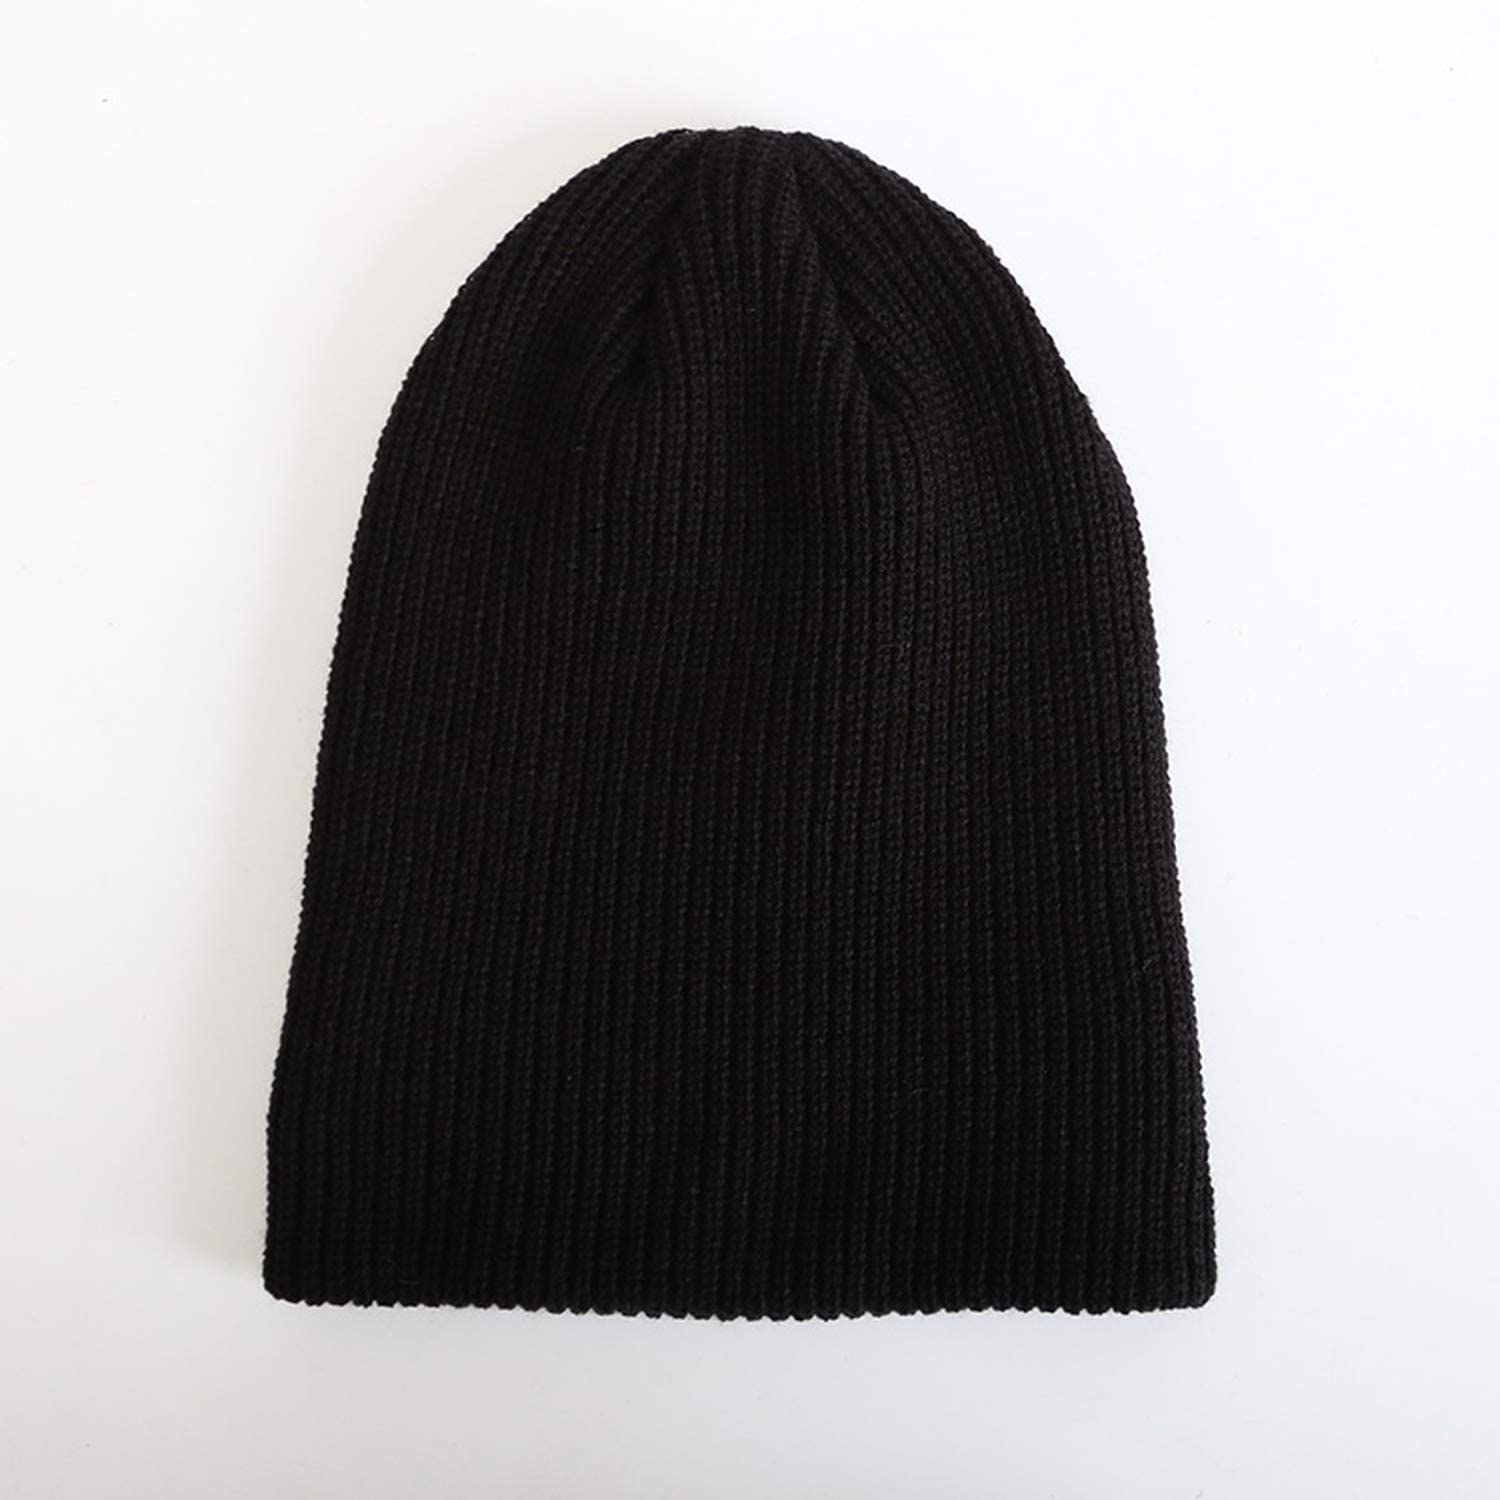 2019 Beanies Knitted Hats Solid Color Caps for Autumn Spring Summer Men Short Head Cap Outdoor Melon Cap